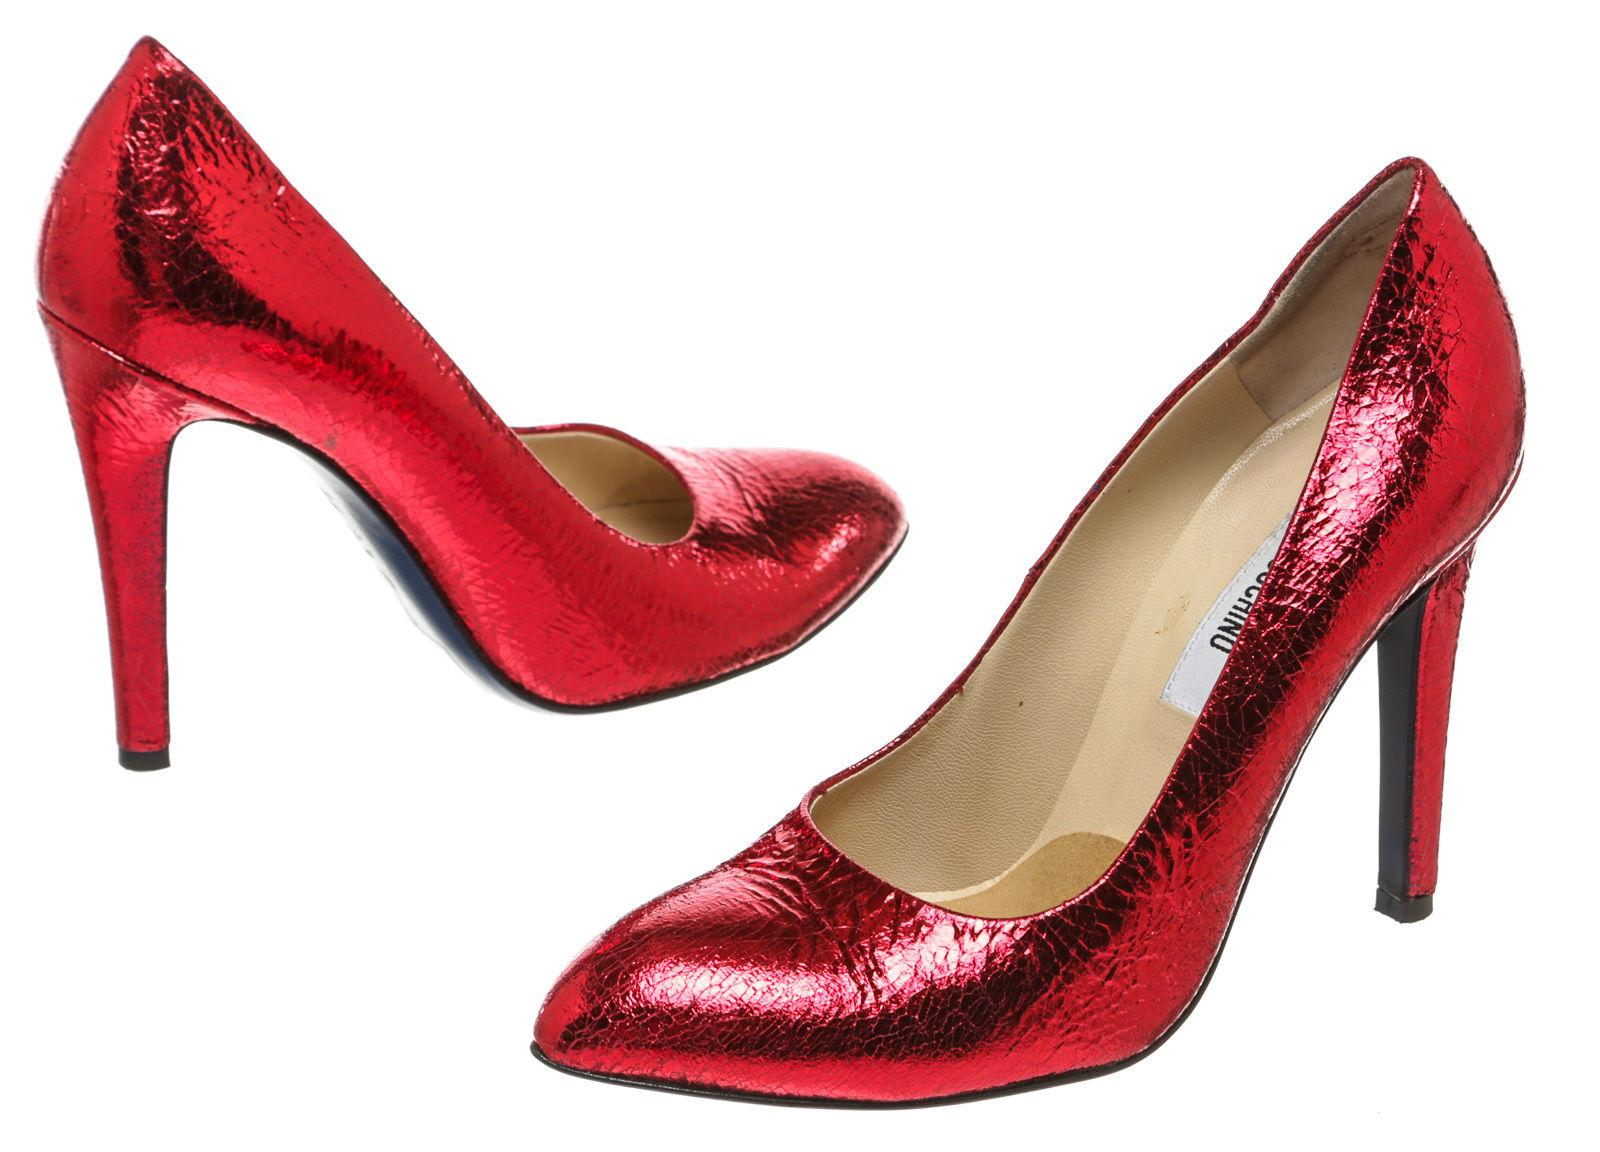 Pre-owned - Leather heels Moschino pZ8goSFmDw